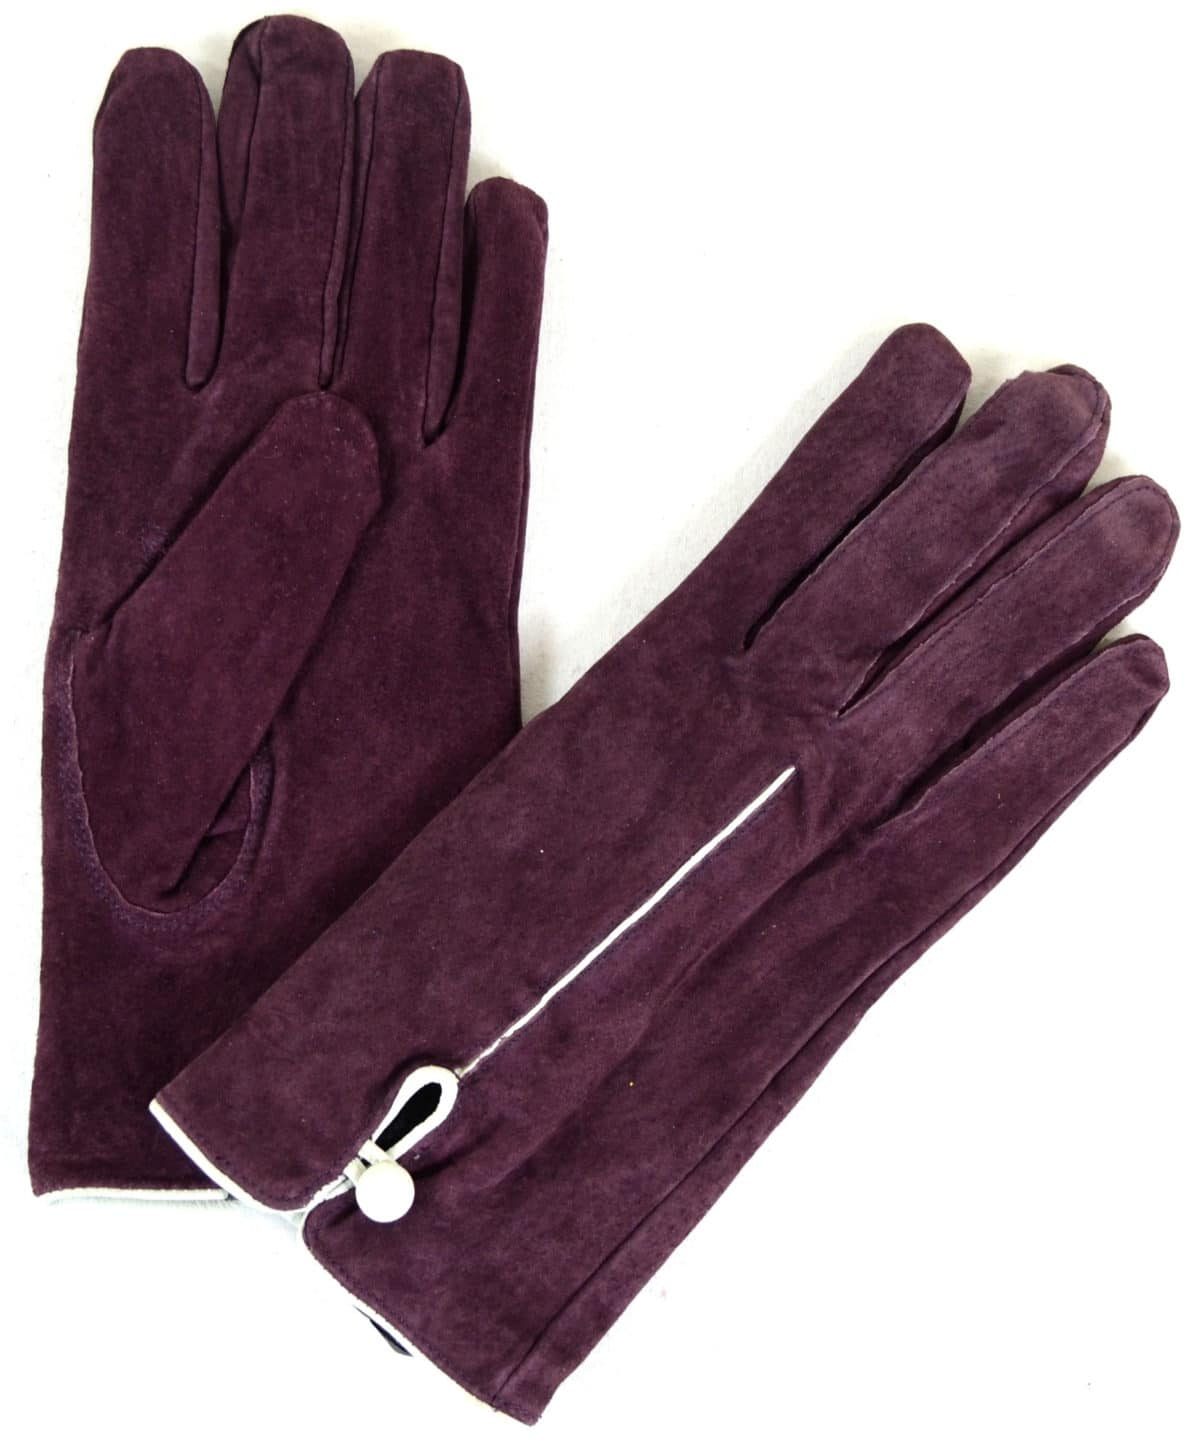 Suede Gloves Fleece Lining and Button Design - Purple